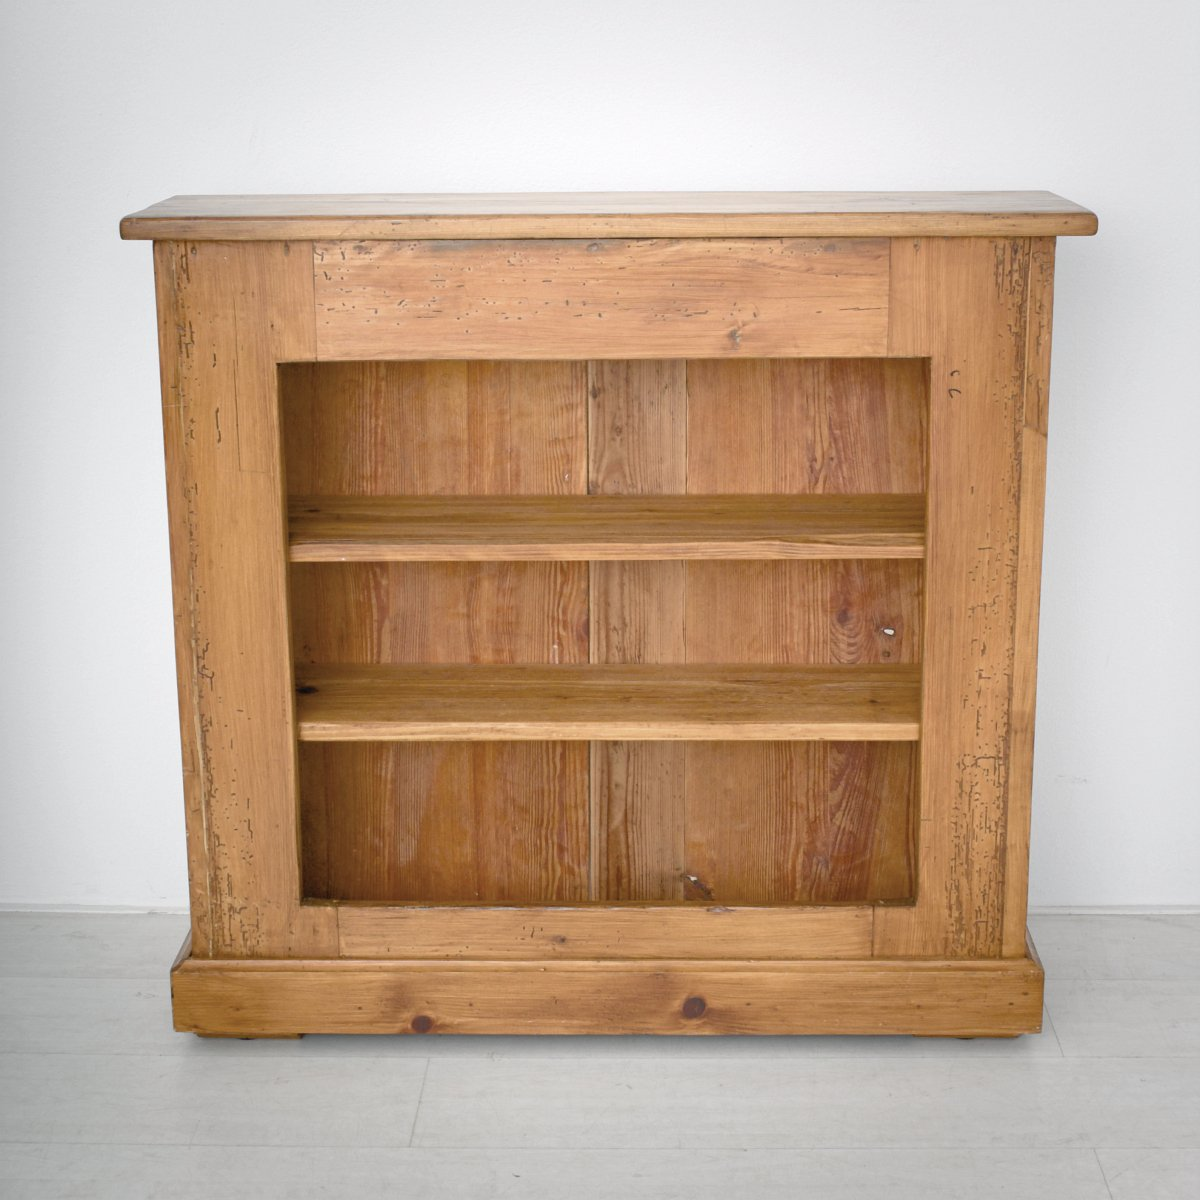 Antique Small Wooden Shelving Unit 1890s For Sale At Pamono